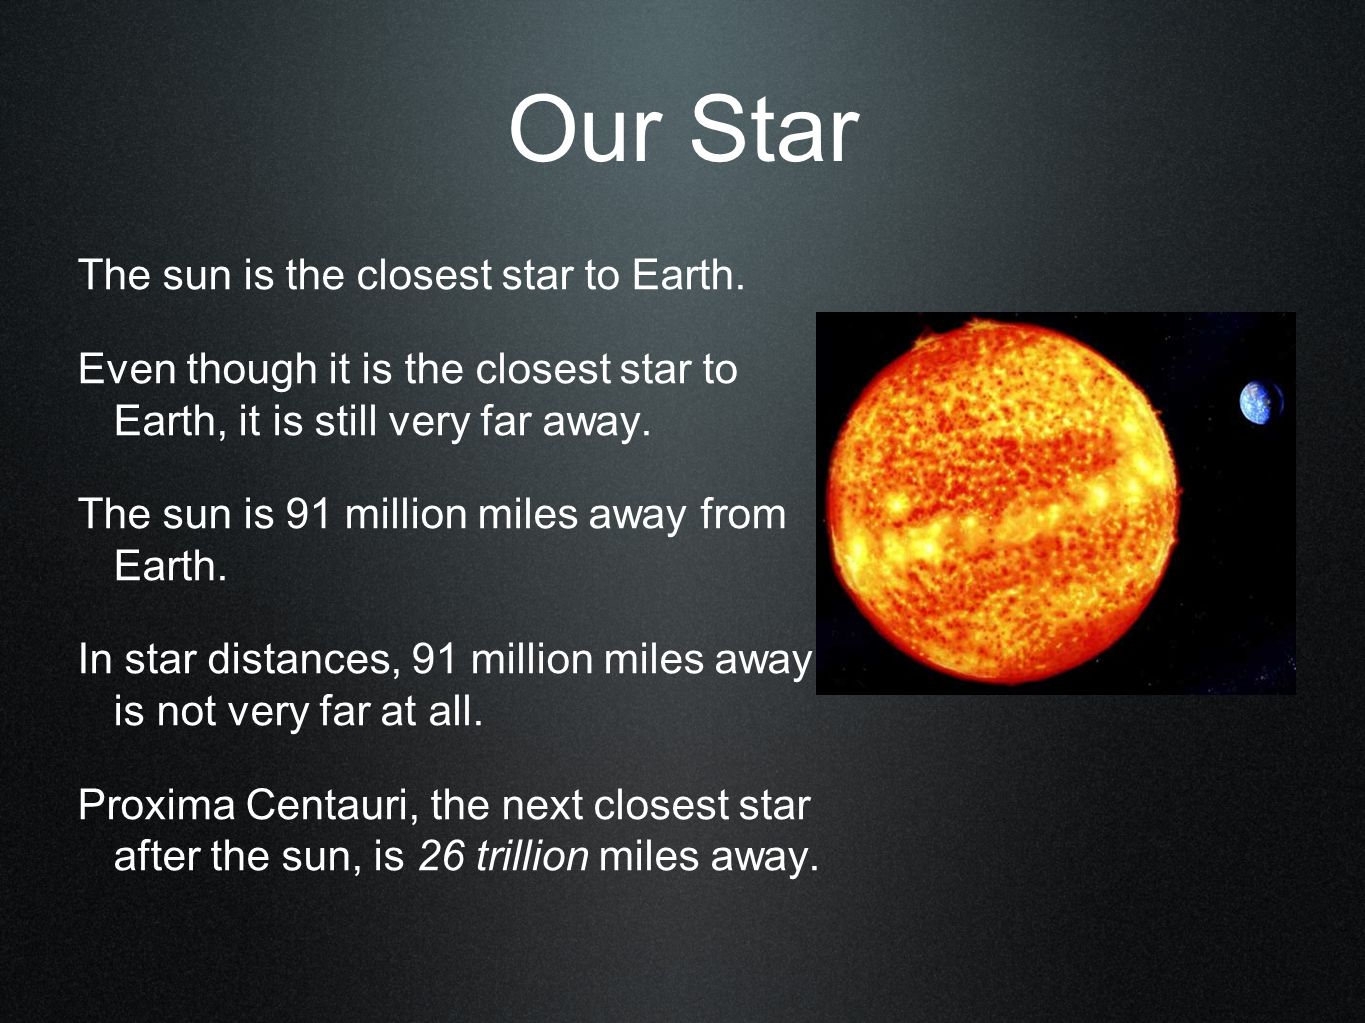 our star the sun is a star just like the other ones you see in the